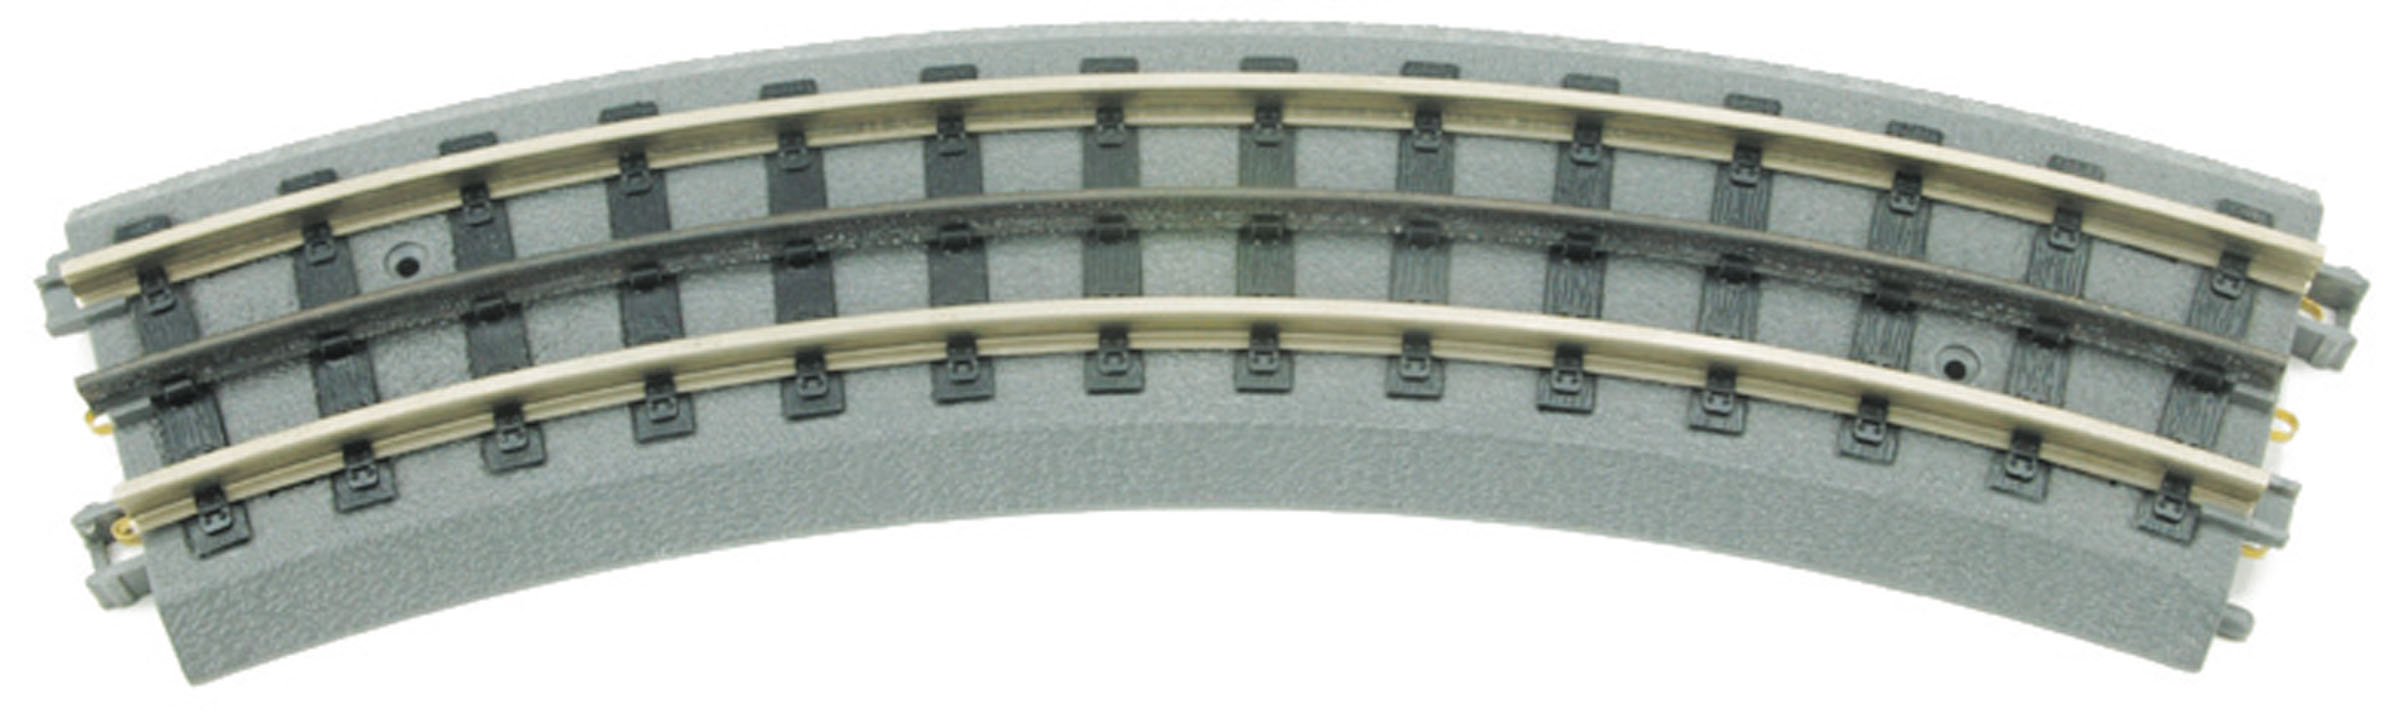 MTH 40-1002 Curved 0-31 Realtrax Track This is MTH 40-1002 RealTrax, O-31 curved section. At M.T.H. we believe a track system should allow your model railroad empire to grow. The RealTrax system includes 72 different components for maximum expansion capabilites. You'll find bridges, curves of all sizes, elevated and graduated trestles, crossovers, and every straight and curved configuration you'll need to create your own model railroad empire. And every piece of RealTrax is rugged, realistic, and reliable so you can have fun running your trains.RuggedBecause most toy train empires begin on a carpet or floor, RealTrax is designed to hold up to the rigors of childhood play. Strong snap-together connections make it easy to assemble or change a layout in minutes. And the built-in roadbed helps keep dirt on the floor away from the wheels and gears of your trains.RealisticWith its realistic crossties and ballasted roadbed, RealTrax looks like the mainline track used by heavy freights and high-speed passenger trains. Unlike older O gauge track with a round cross section, RealTrax uses flat-top T-rail like a real railroad.ReliableNickel silver rail ensures that RealTrax will never rust. Spring-loaded phosphor bronze contacts provide superior electrical connections between track sections. The contacts are spring loaded to maintain a solid connection over time and are highly resistant to corrosion of any kind. Similar materials are used in many electrical connections around your home, such as lamps, battery-operated appliances, and electrical outlets.Did You Know?It takes EIGHT sections of O-31 RealTrax Curves To Make A CircleIt takes TWELVE sections of O-42 RealTrax Curves To Make A CircleIt takes SIXTEEN sections of O-54 RealTrax Curves To Make A CircleIt takes SIXTEEN sections of O-72 RealTrax Curves To Make A CircleIt takes SIXTEEN sections of O-82 RealTrax Curves To Make A CircleIts key features are:Intricately detailed ABS roadbedSolid, rust-proof nicke